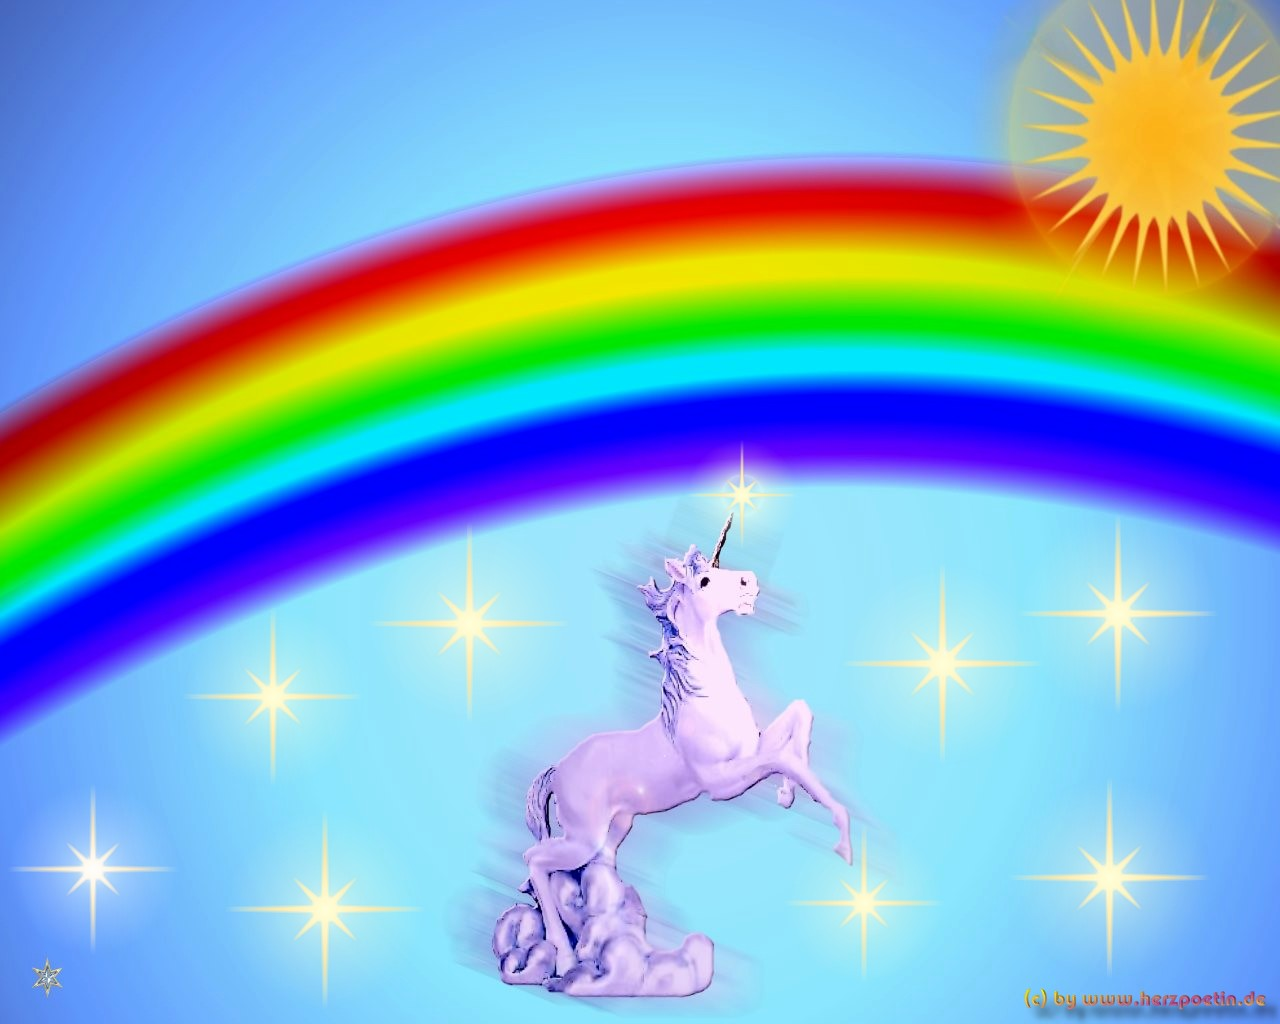 rainbow-unicorn.jpg